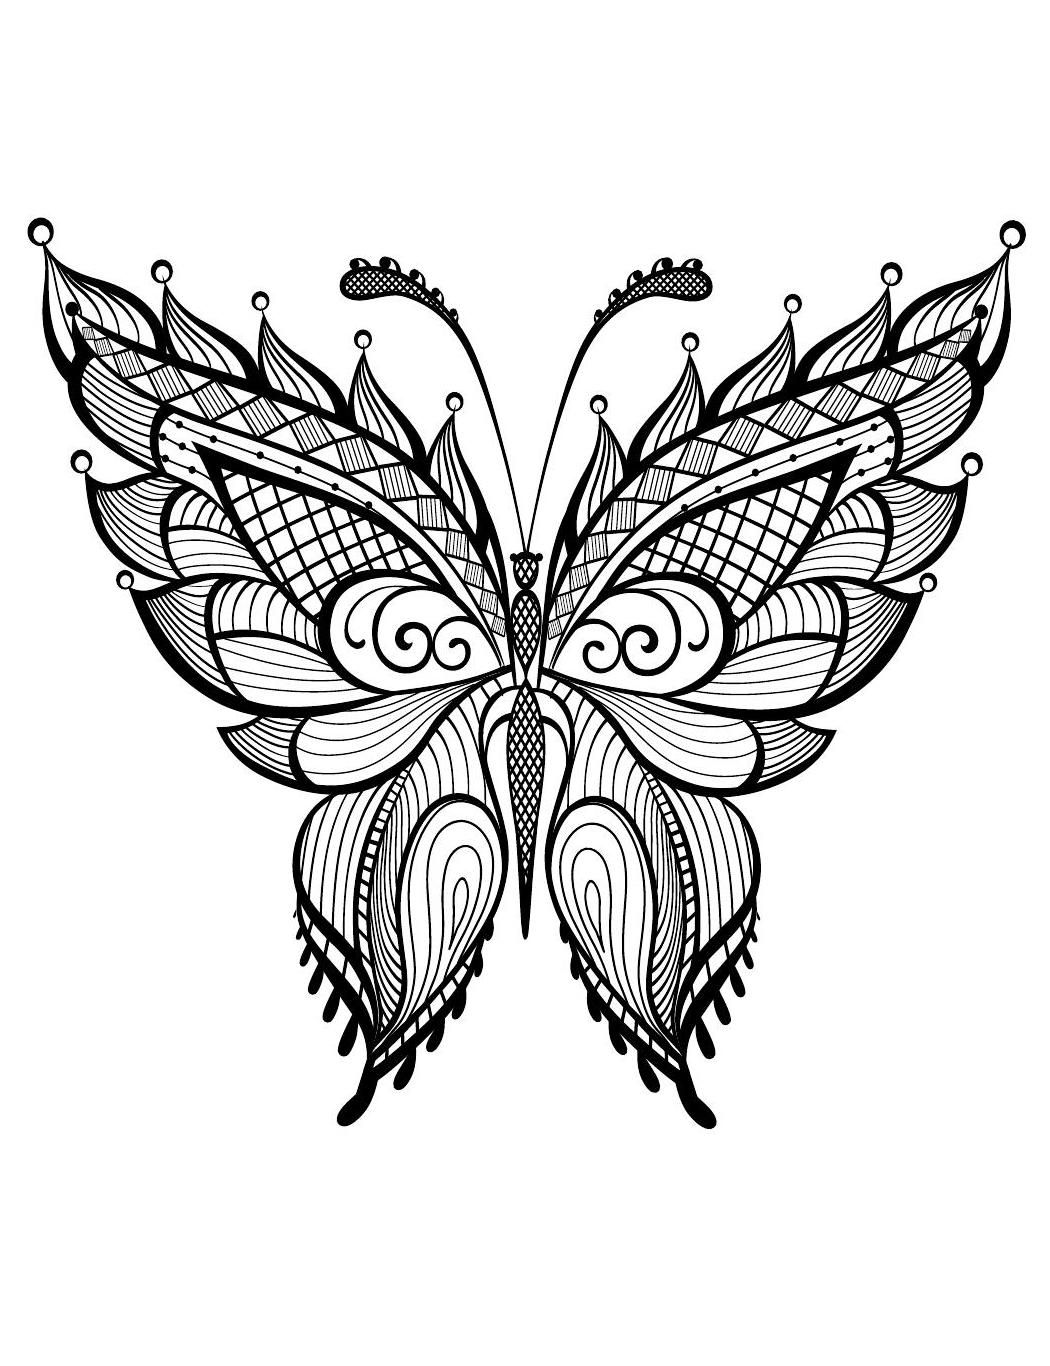 Nuostabi Akimirka Butterfly Coloring Page Mandala Design Art Butterfly Tattoo Designs